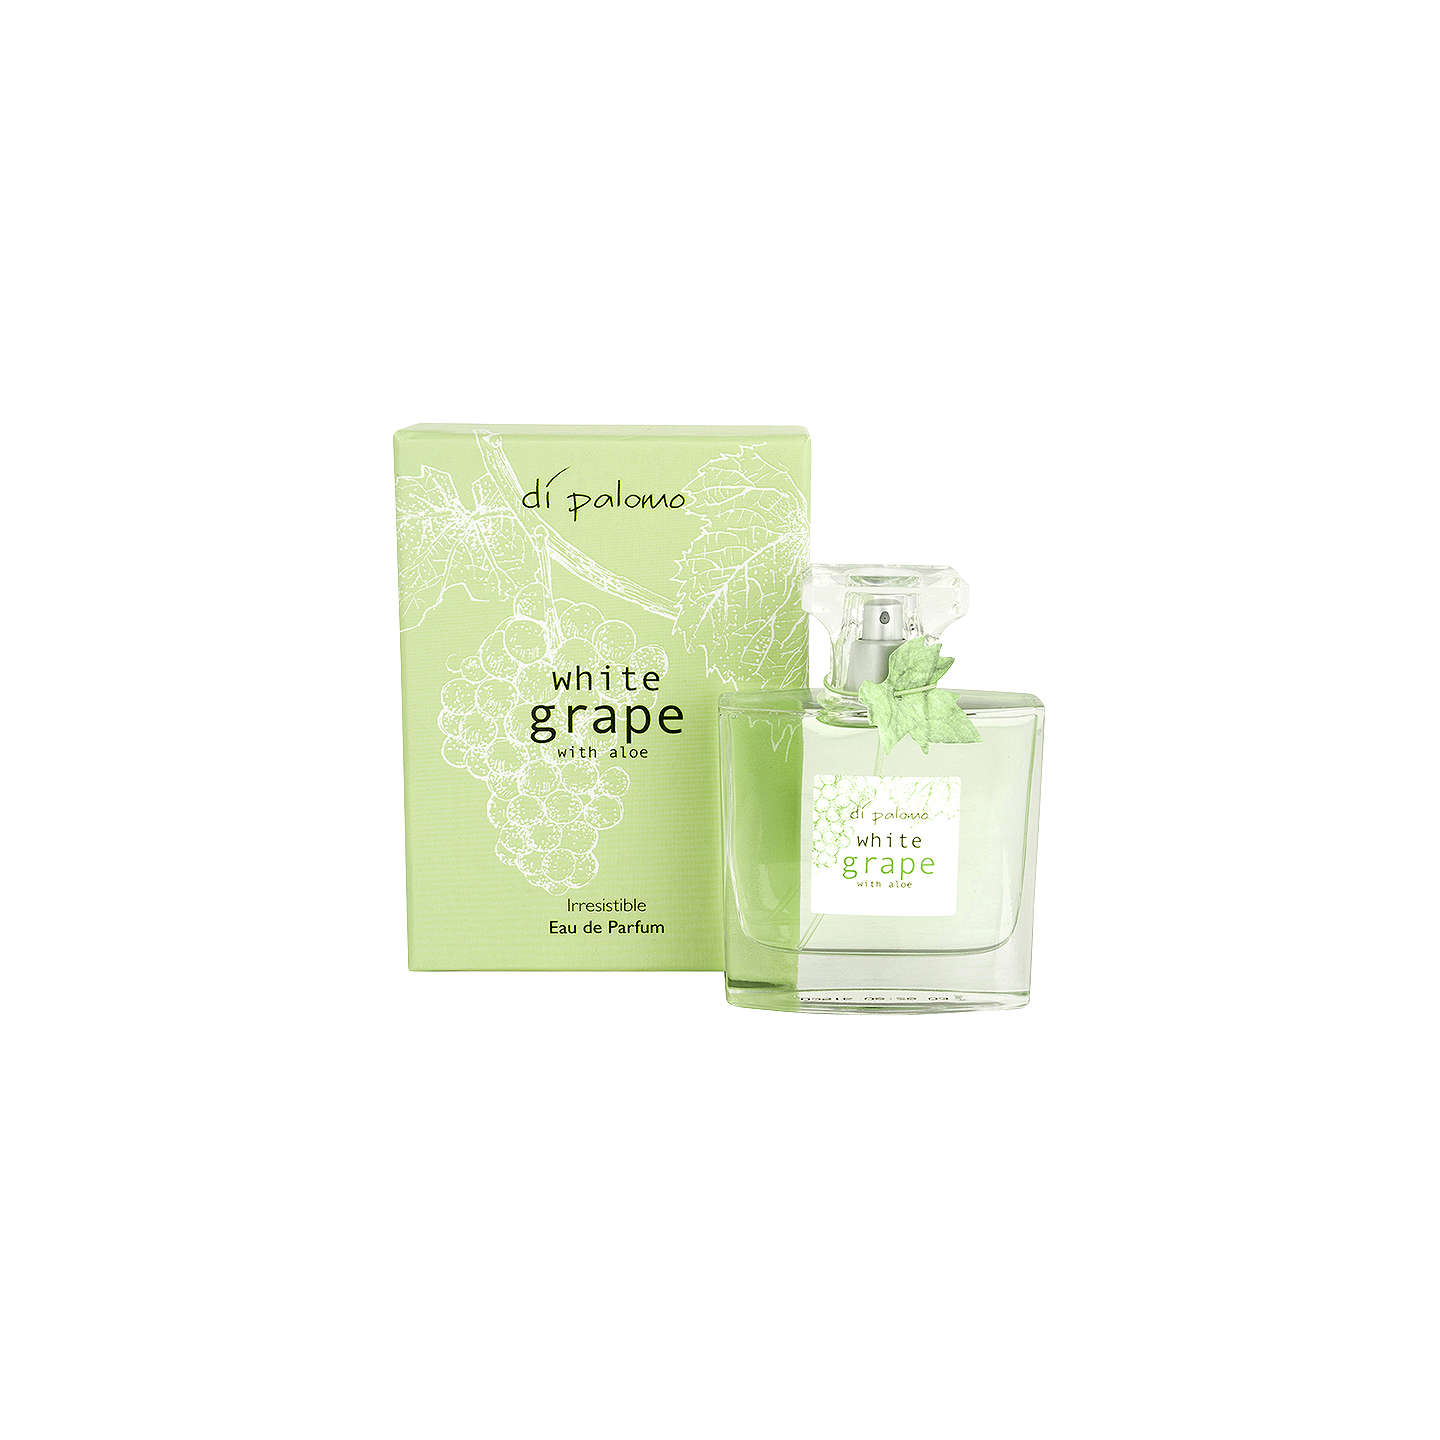 BuyDi Palomo White Grape Eau de Parfum, 50ml Online at johnlewis.com